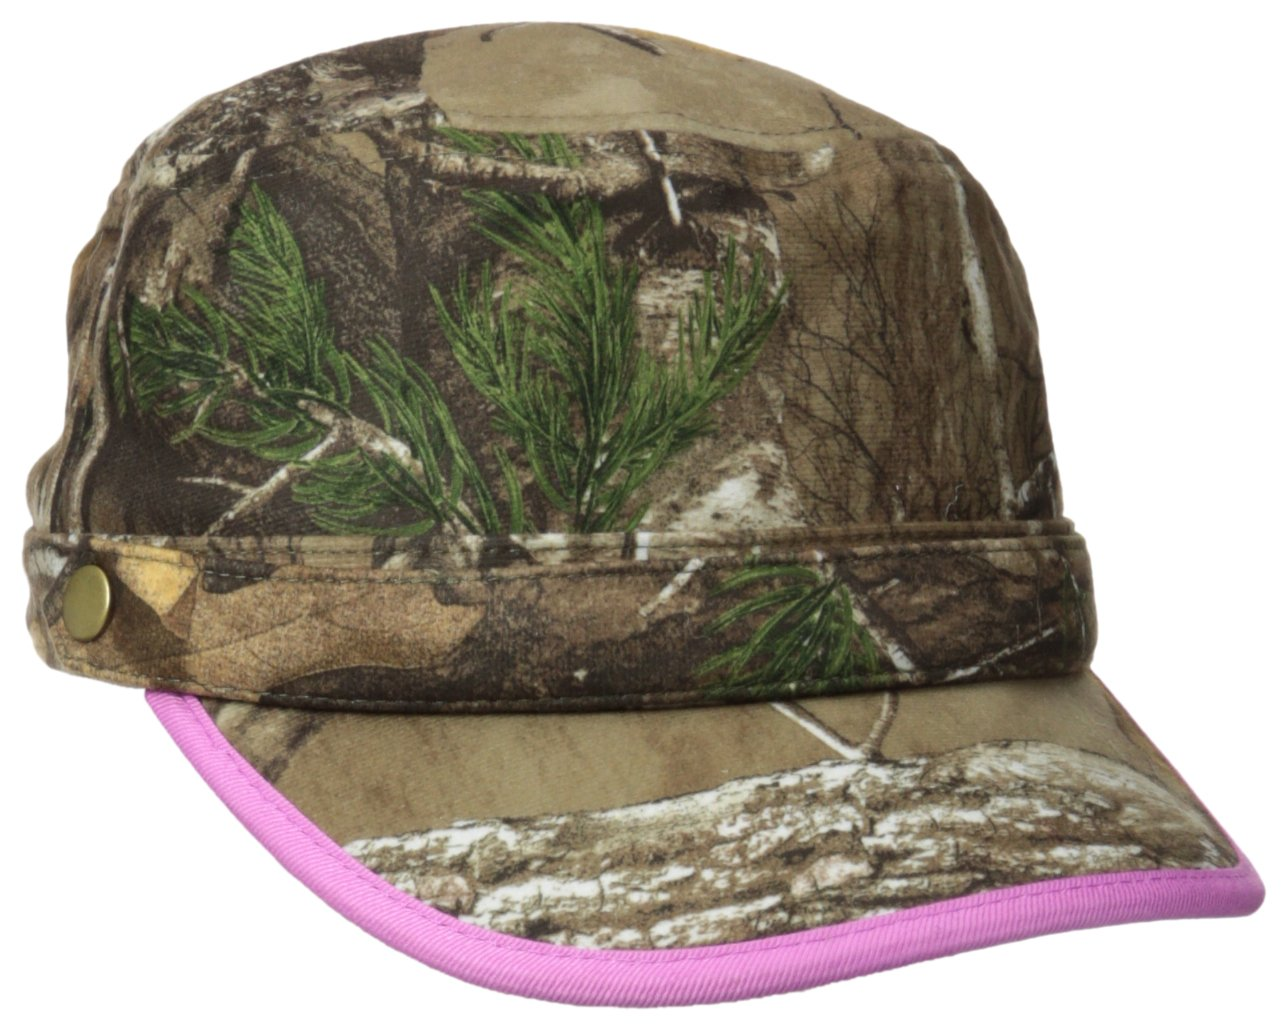 Scent-Lok Women's Microfleece Cadet Cap, Realtree Xtra, One Size Fits Most